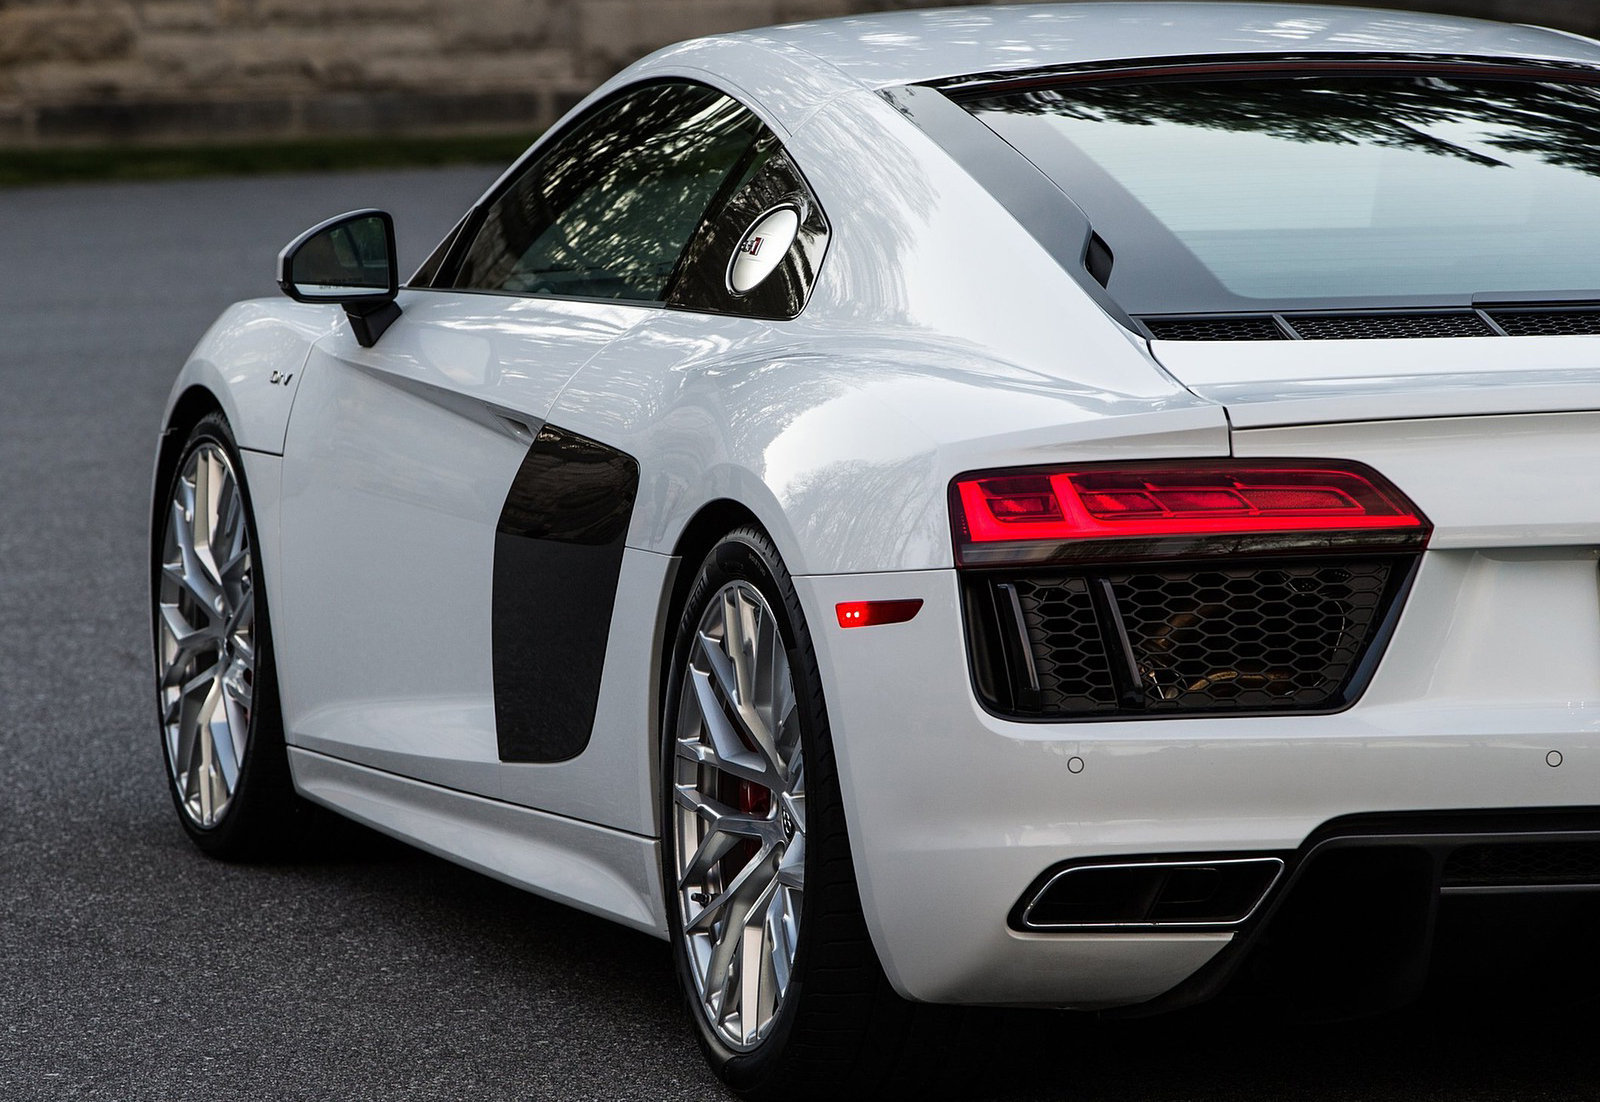 Cars Audi Roads R8 White V10 Wallpaper Allwallpaper In: 2017 Audi R8 V10 And V10 Plus Specification